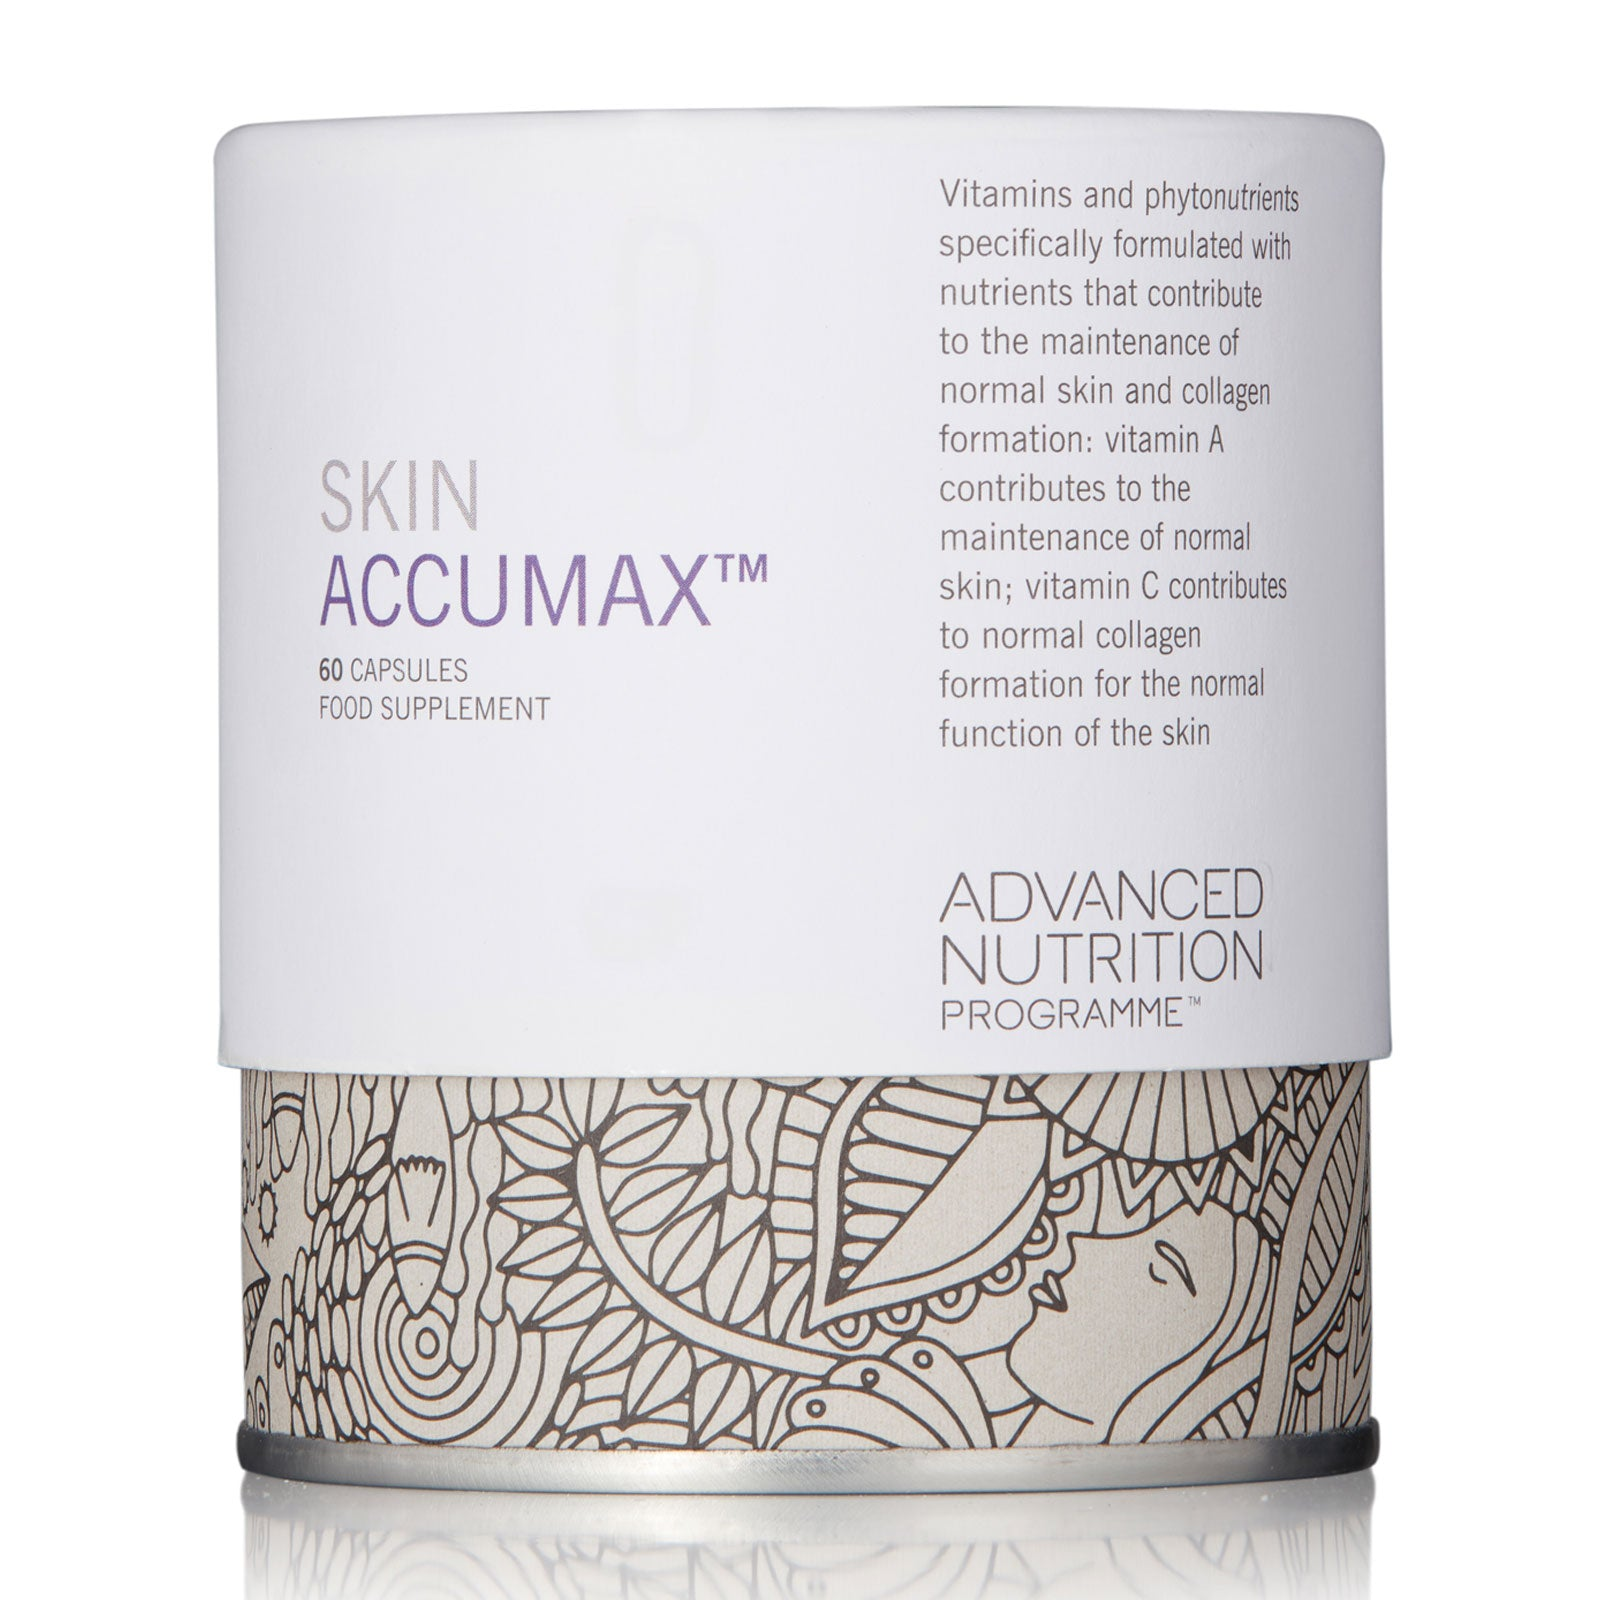 Advanced Nutrition Programme™ Skin Accumax™ Food Supplement x 60 Capsules